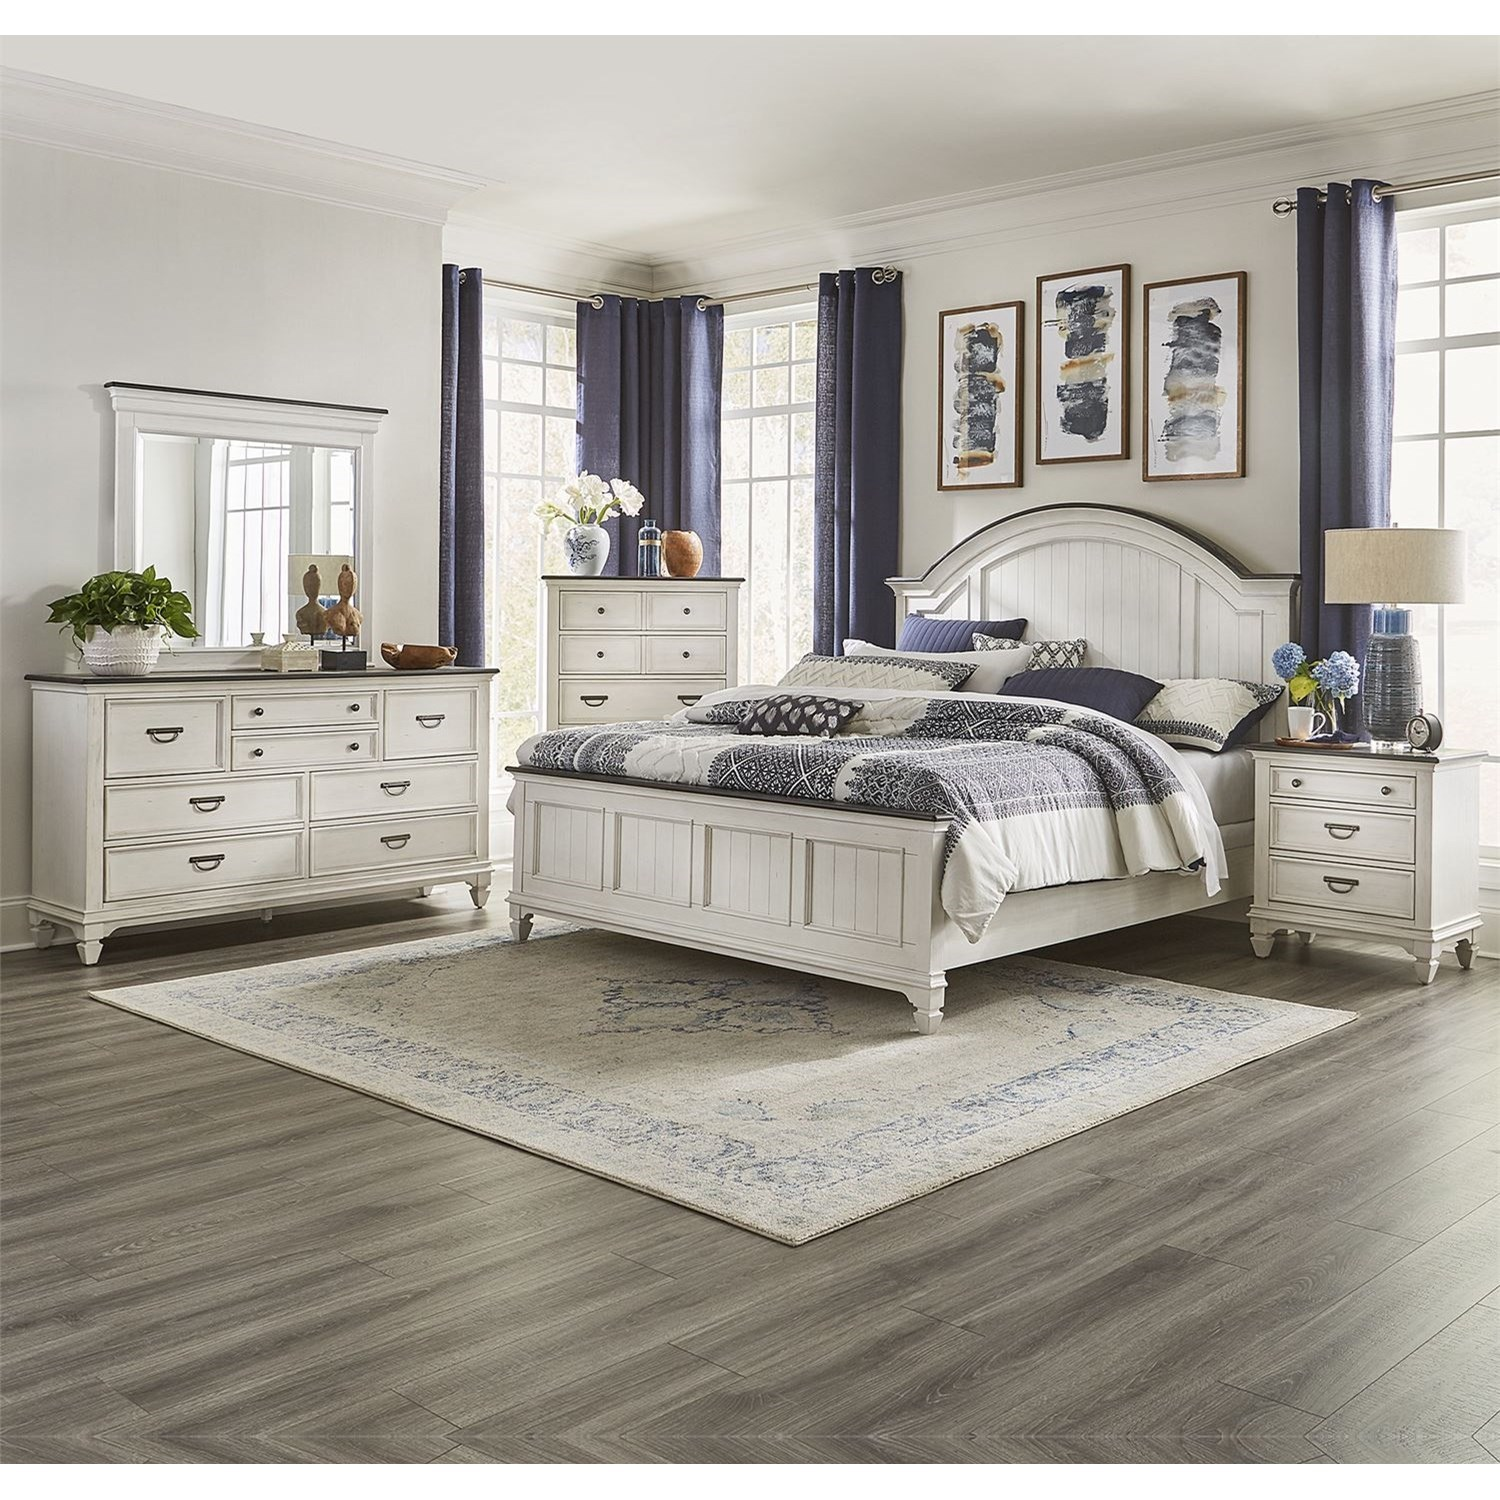 Allyson Park King Bedroom Group by Liberty Furniture at Van Hill Furniture